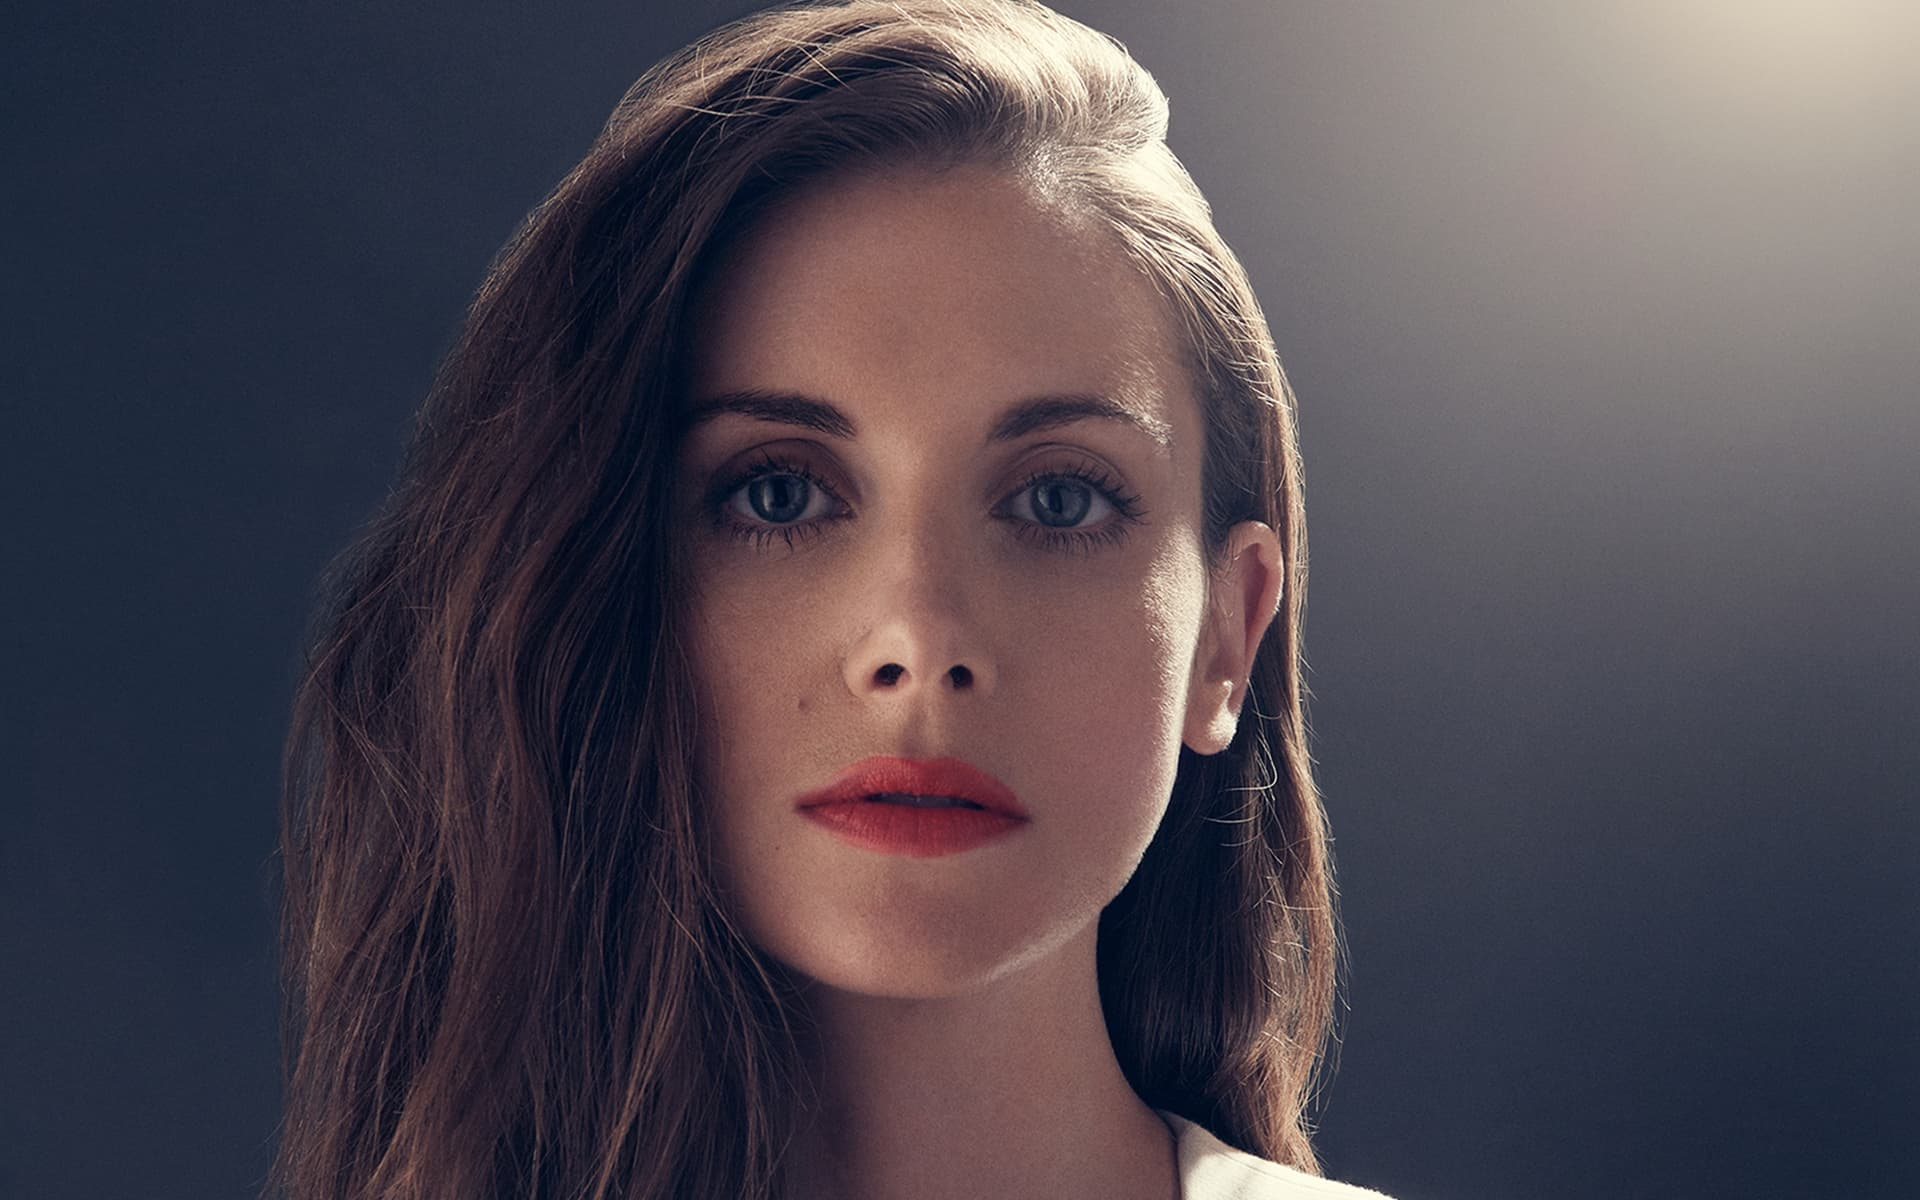 Alison Brie High Definition wallpaper beautiful